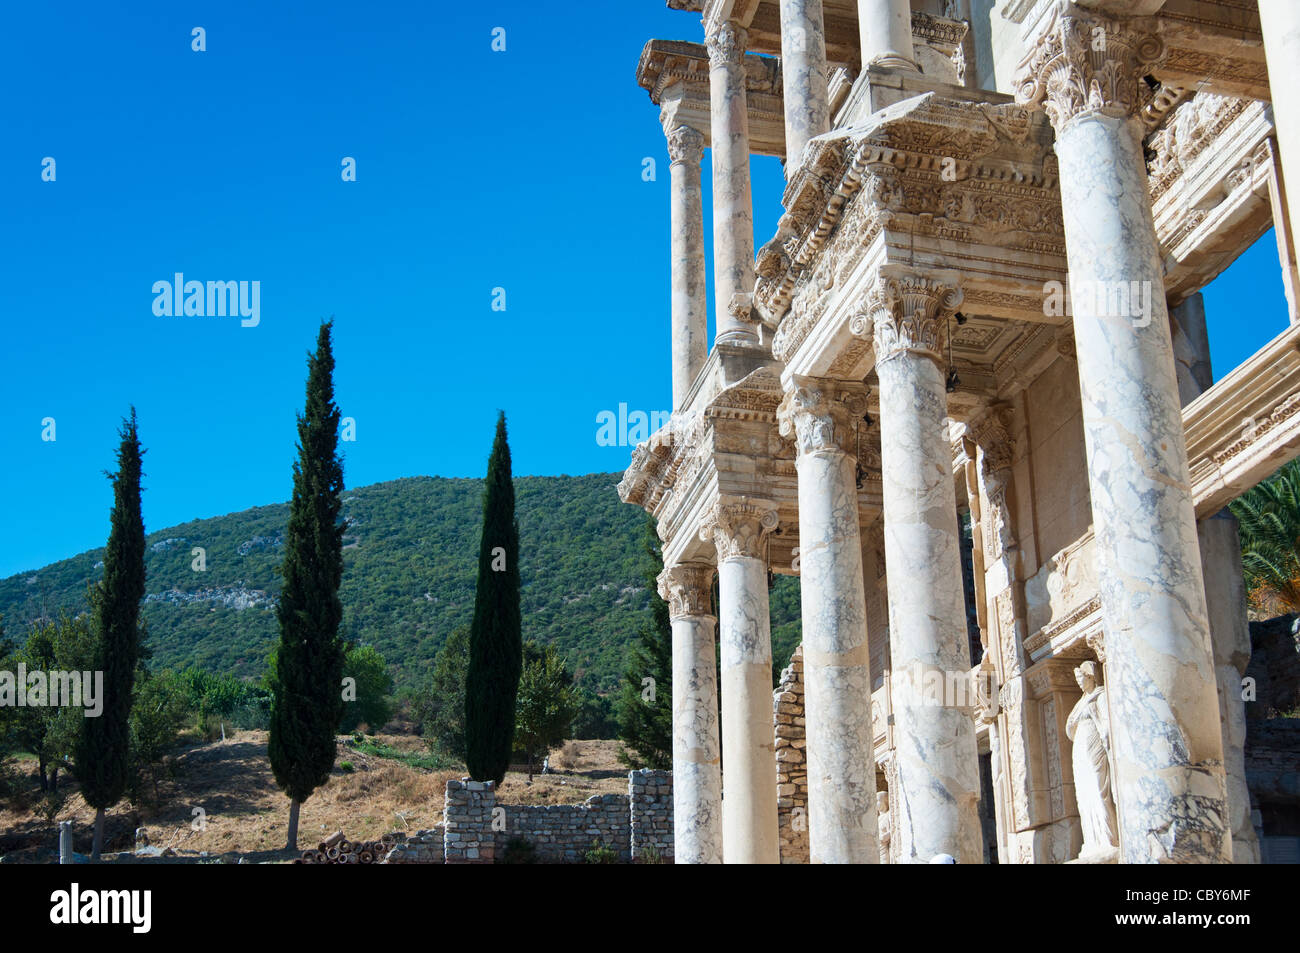 Ruins of the facade of library Celsus bibliotheque in the ancient town of Ephesus in Turkey. - Stock Image